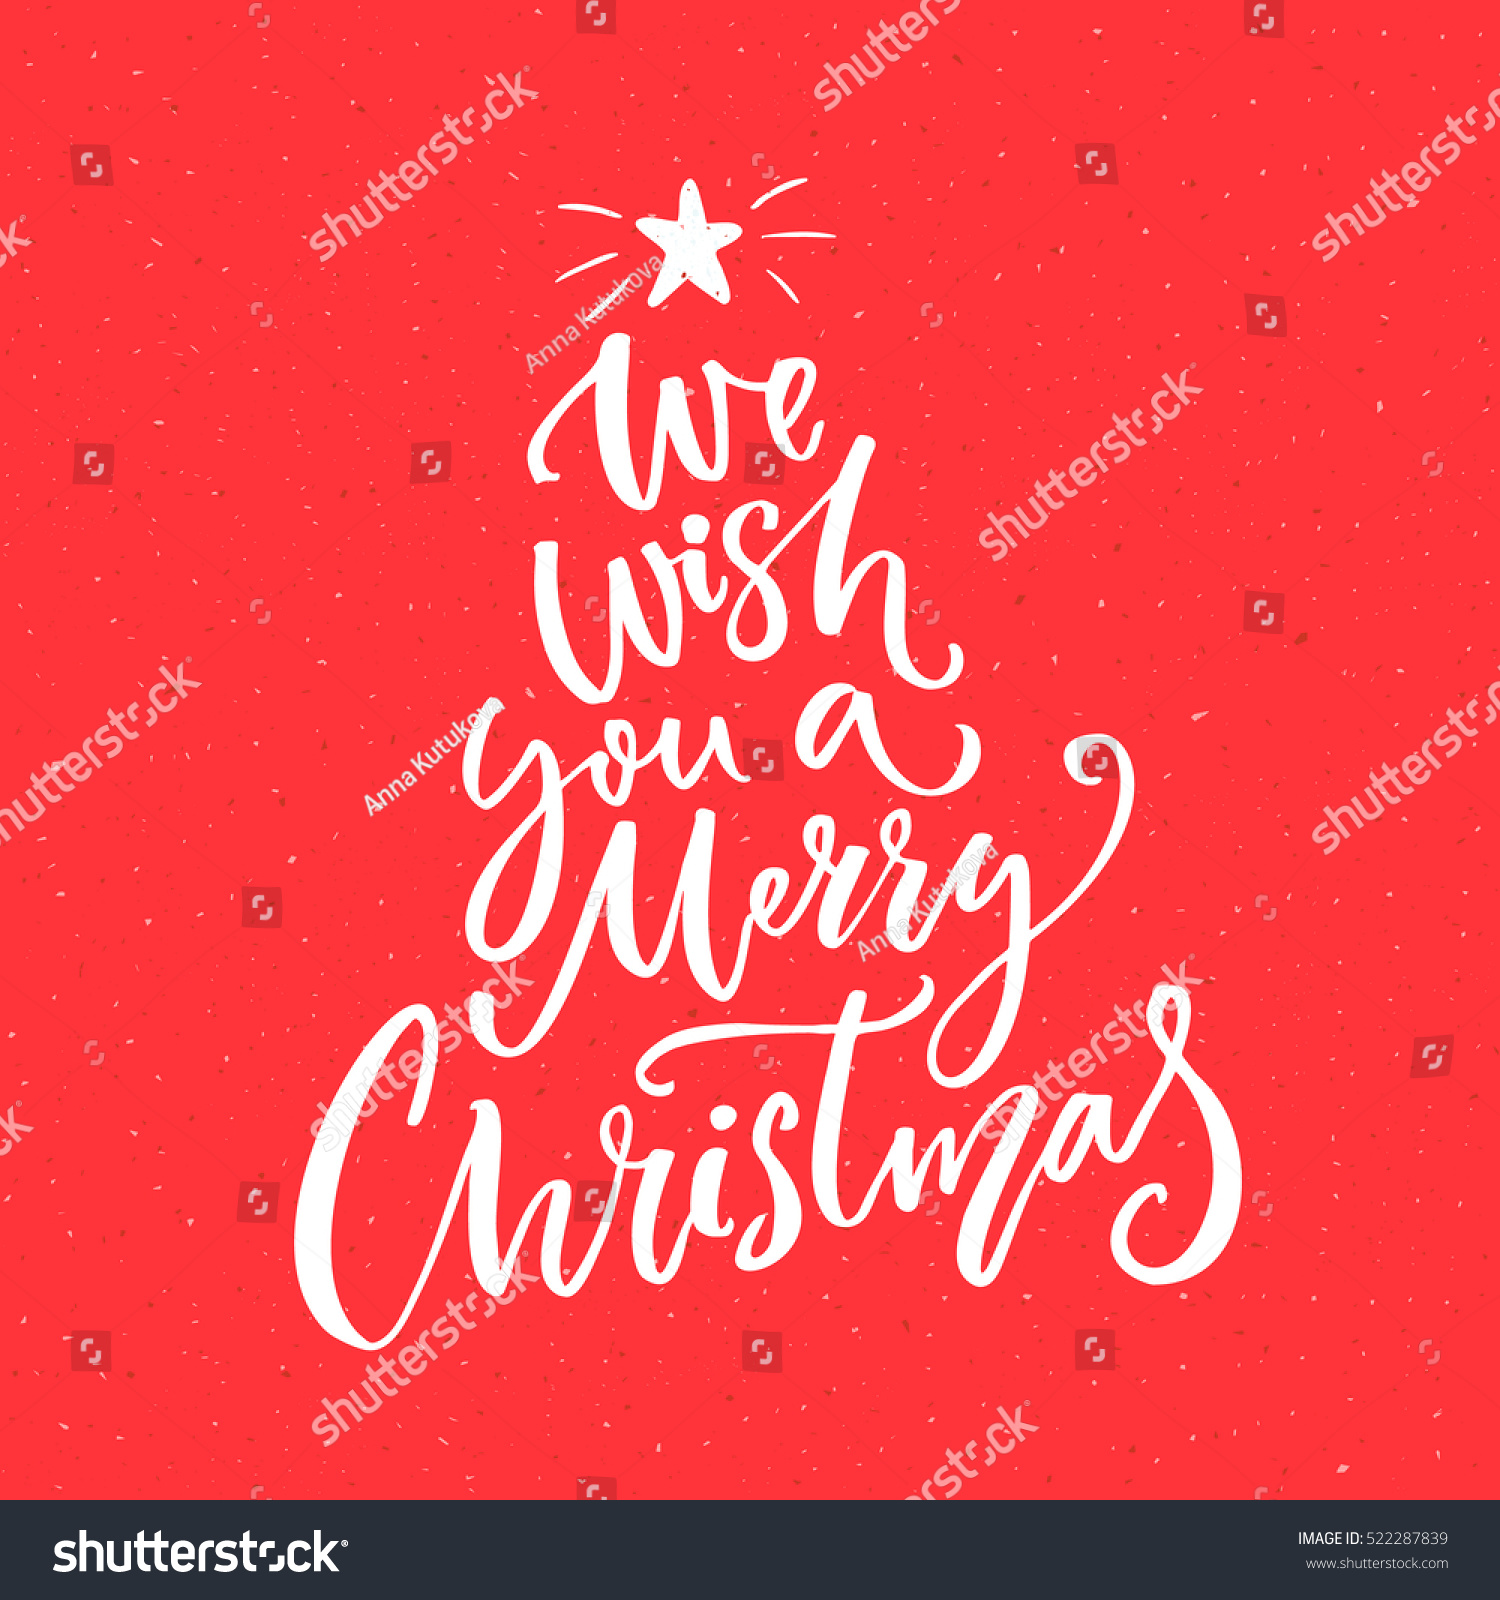 We wish you merry christmas text stock vector 522287839 shutterstock we wish you a merry christmas text calligraphy text for greeting cards on red background kristyandbryce Gallery